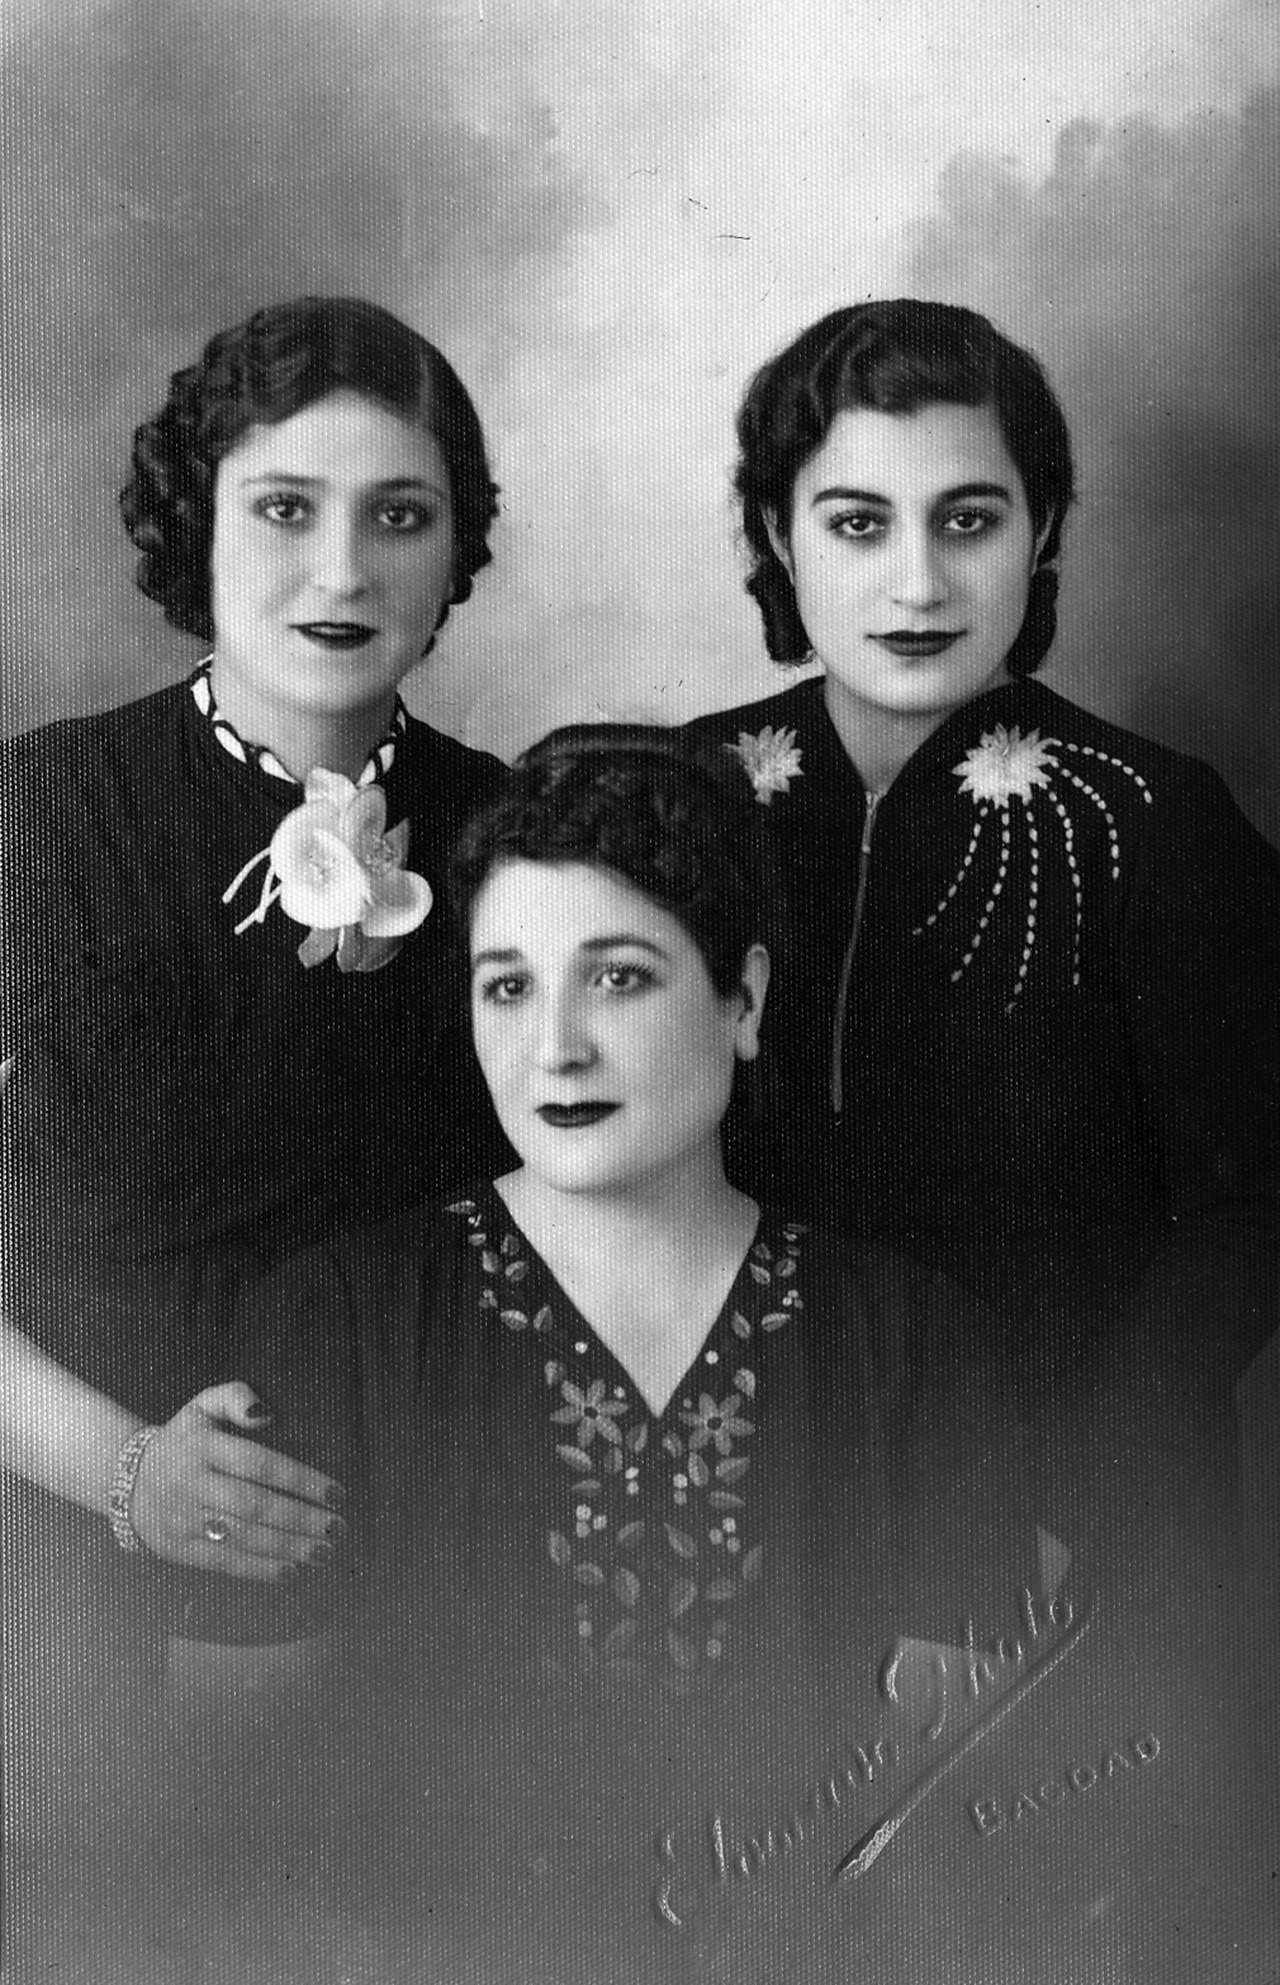 My grandmother, Renée Isaac David (Née Shamoon), center, with her sister Marcel, left, and her friend Leoni. Baghdad, Iraq, ca. 1940.